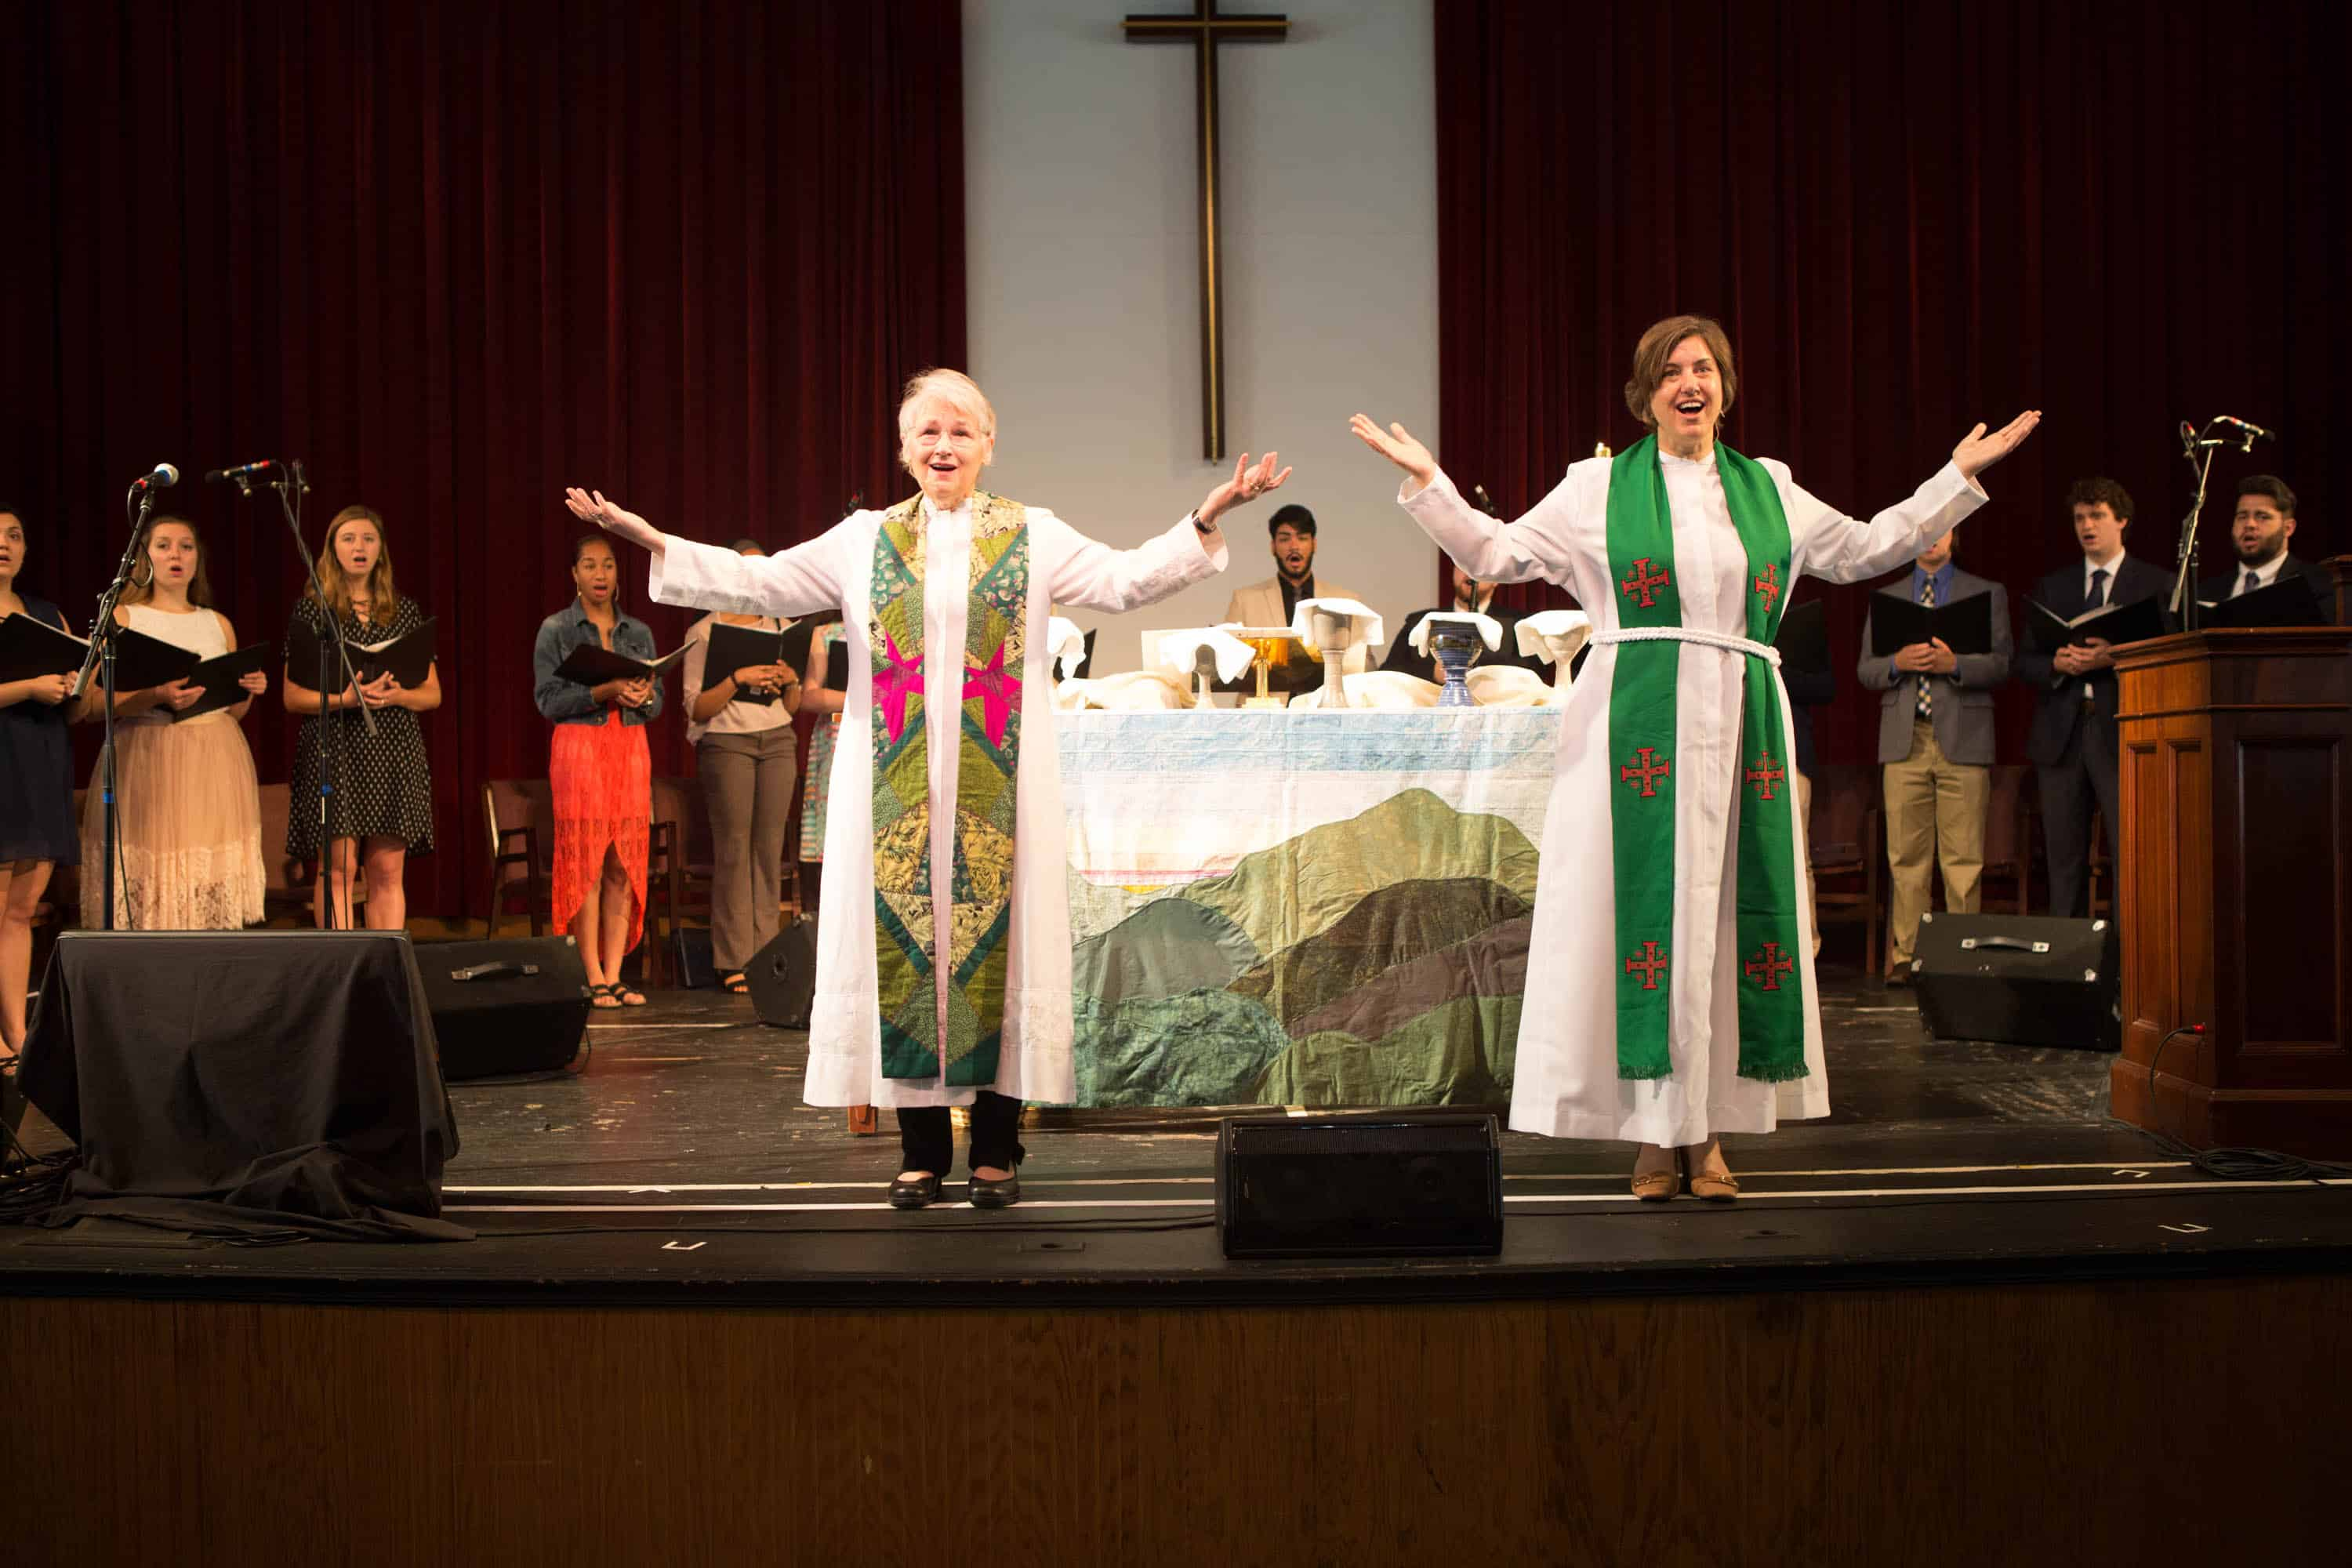 Summer Worship at Lake Junaluska